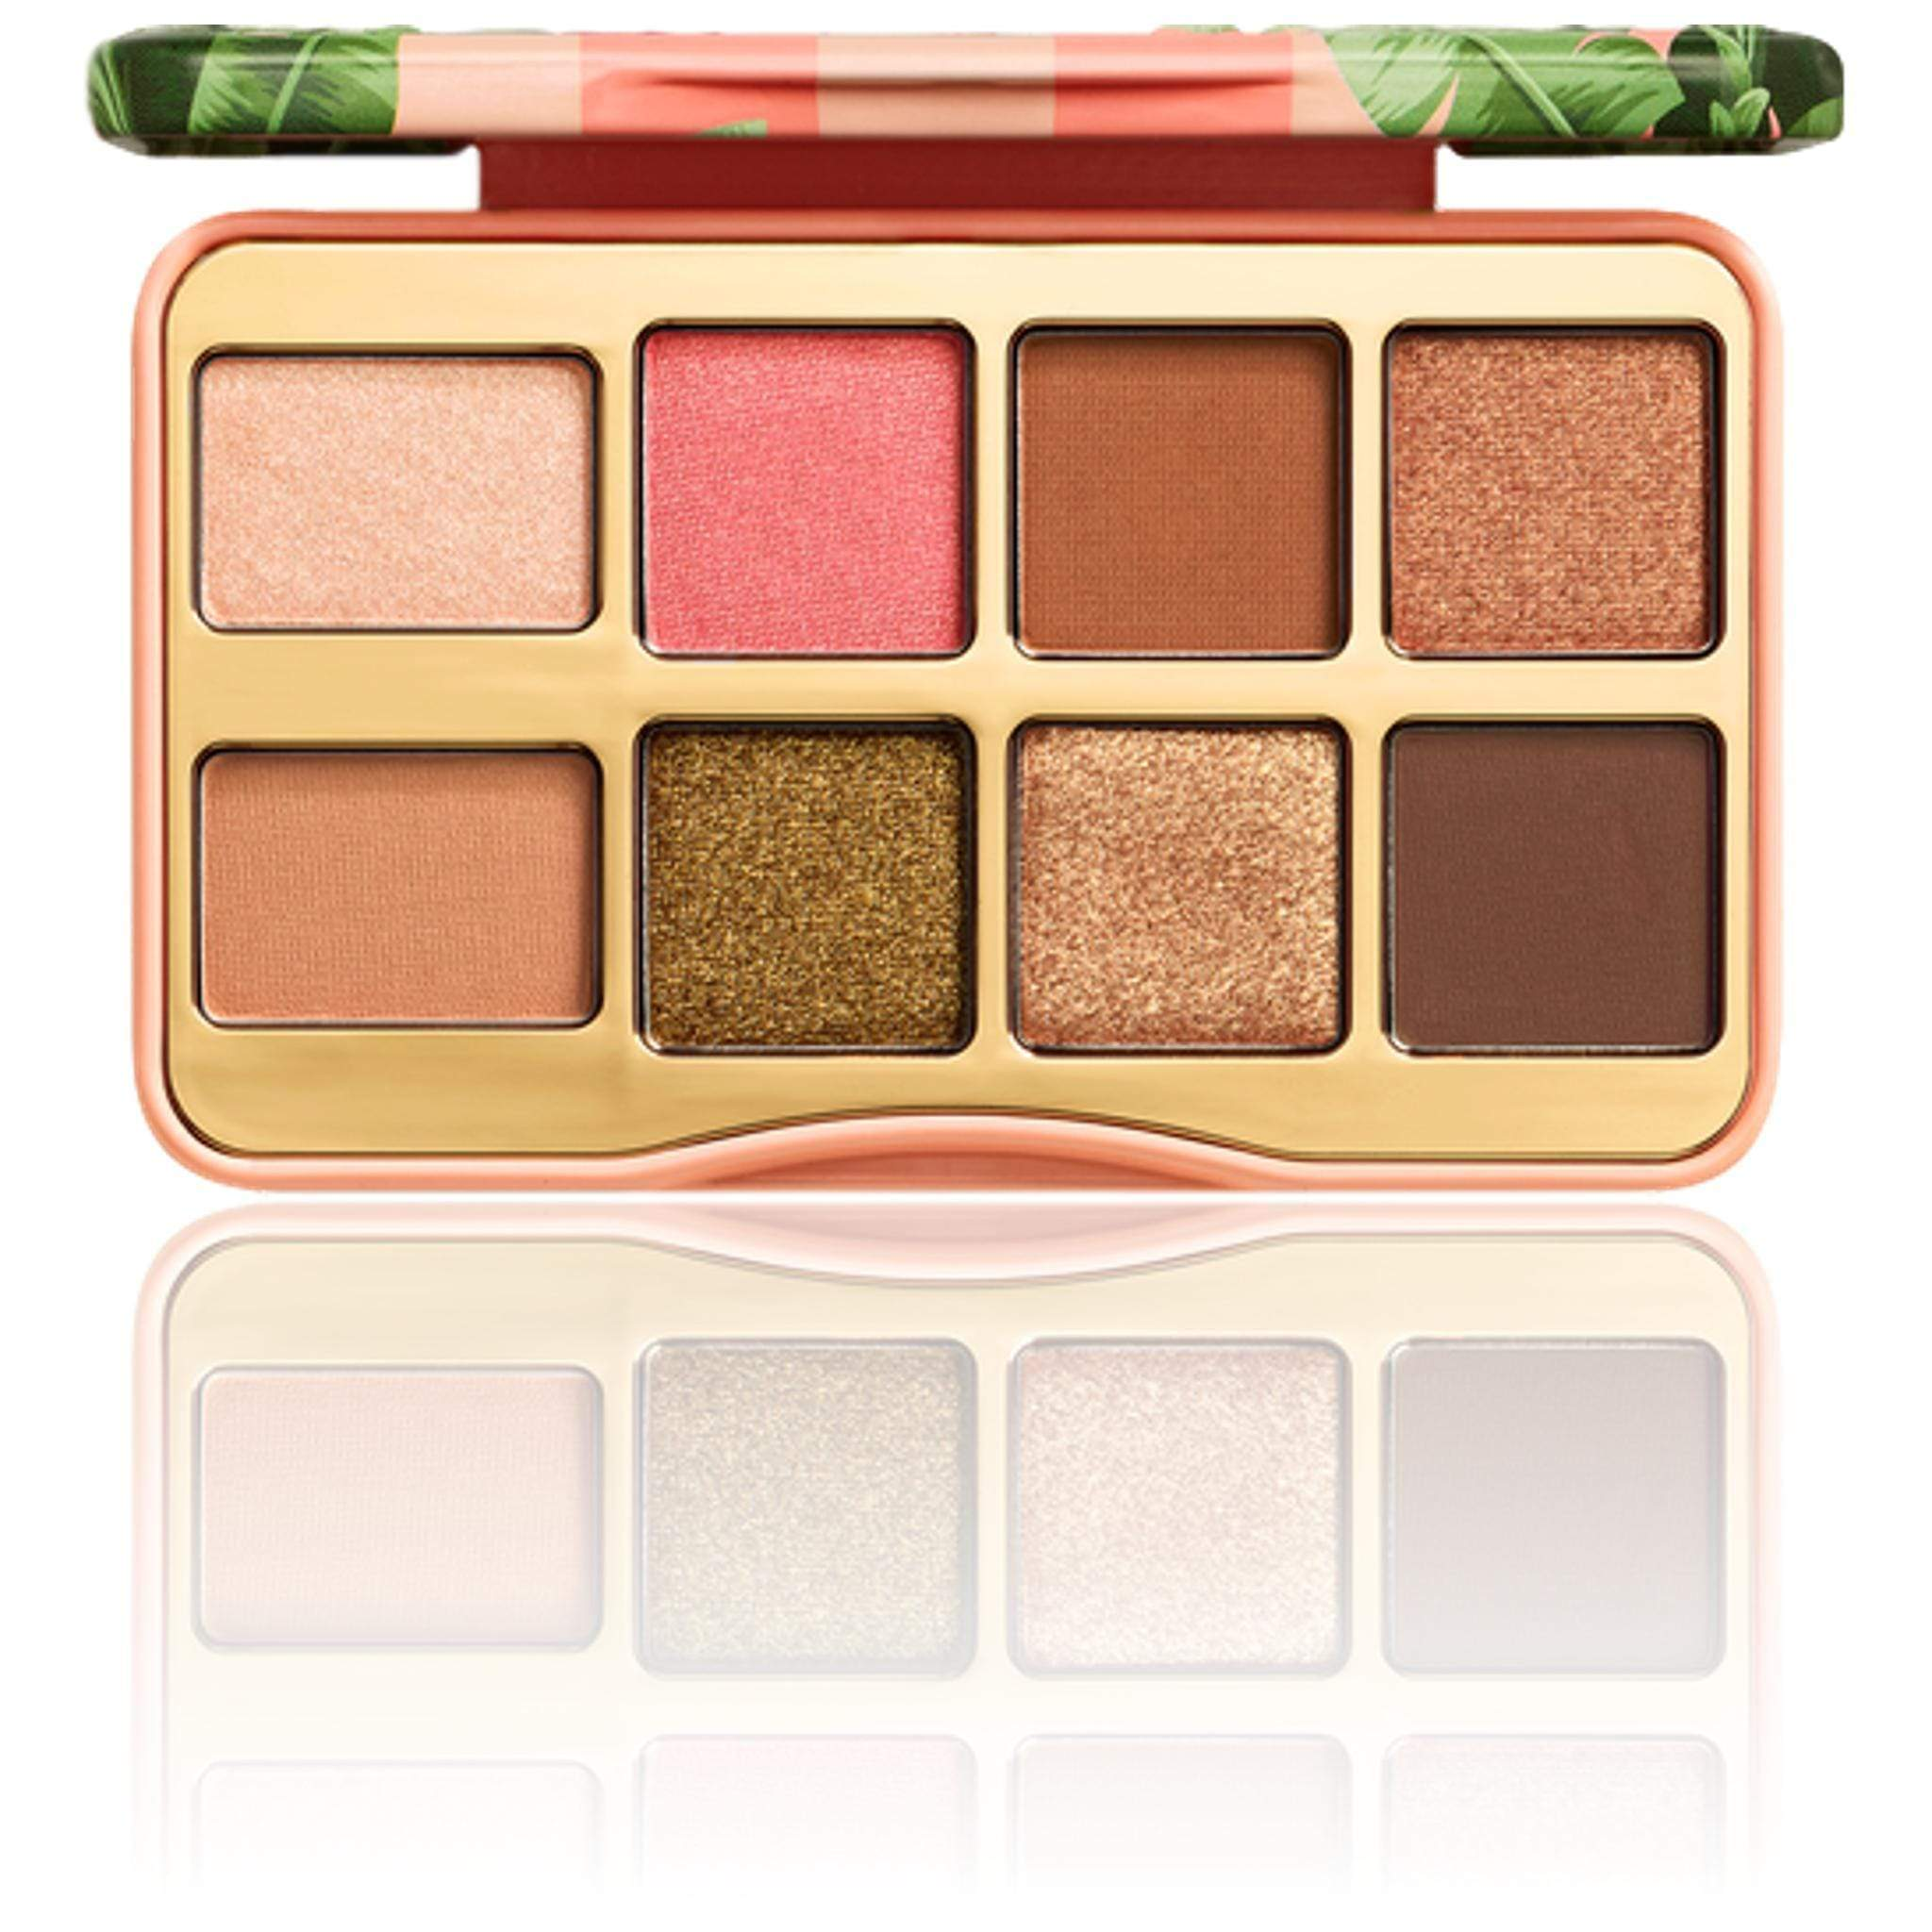 Too Faced eyeshadow palette TOO FACED Shake Your Palm Palms Palette